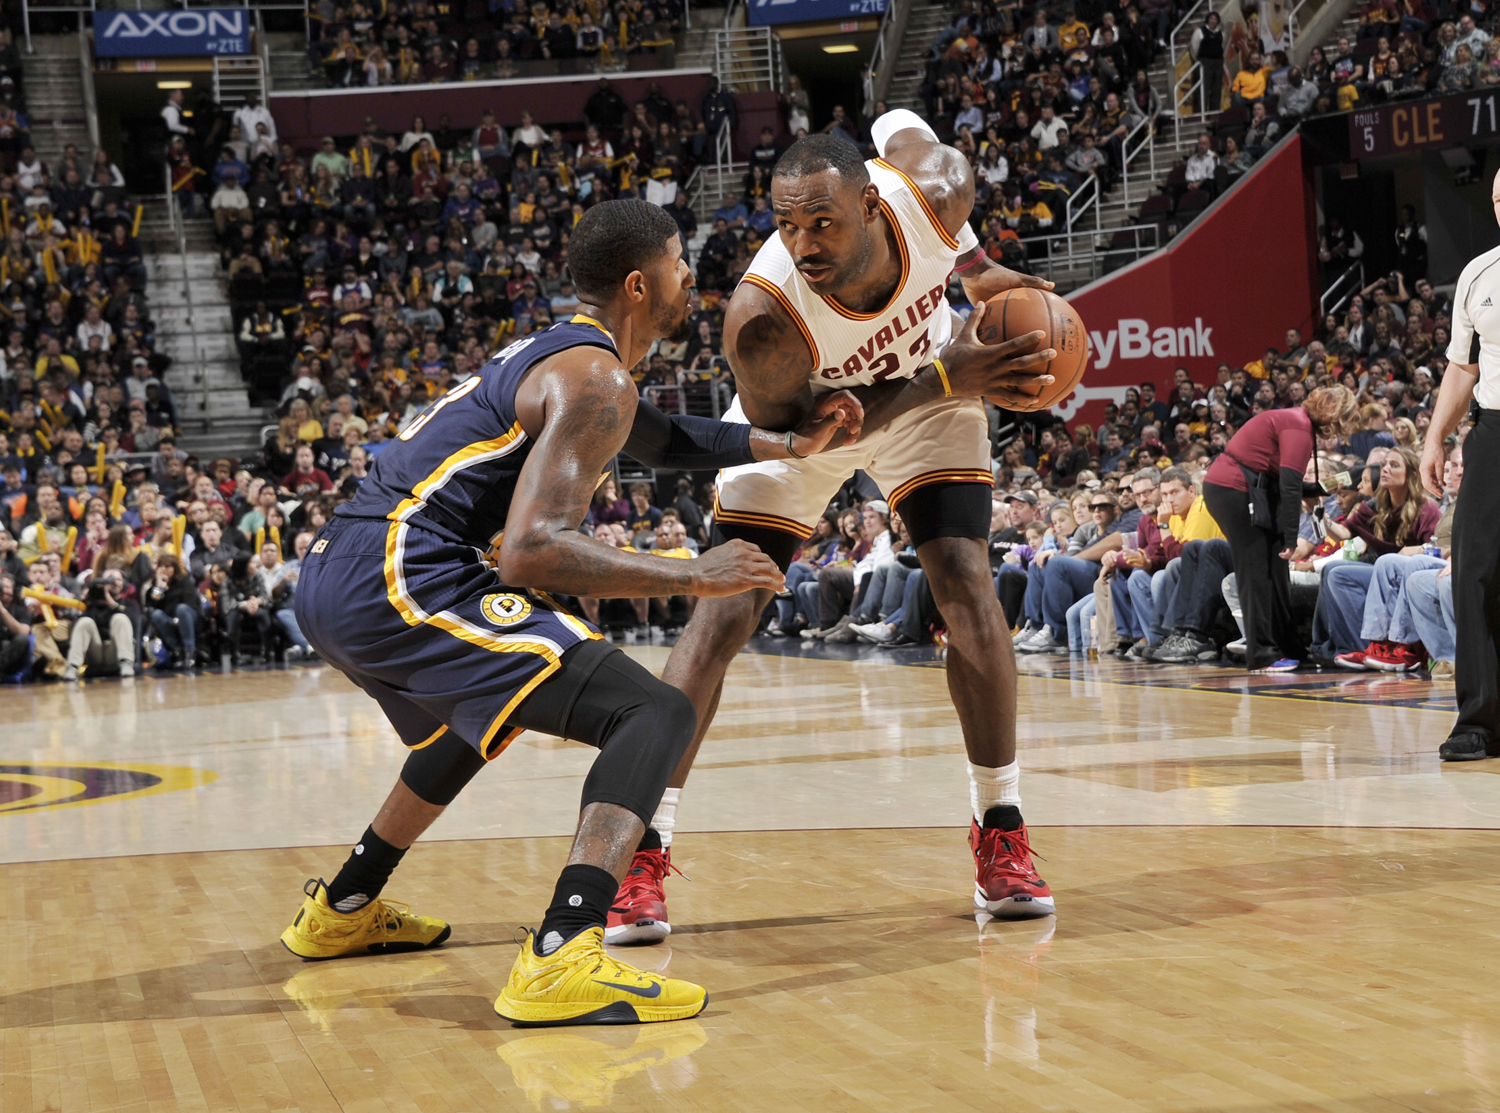 CLEVELAND, OH - NOVEMBER 8:  LeBron James #23 of the Cleveland Cavaliers handles the ball against Paul George #13 of the Indiana Pacers on November 8, 2015 at Quicken Loans Arena in Cleveland, Ohio. NOTE TO USER: User expressly acknowledges and agrees that, by downloading and/or using this Photograph, user is consenting to the terms and conditions of the Getty Images License Agreement. Mandatory Copyright Notice: Copyright 2015 NBAE  (Photo by David Liam Kyle/NBAE via Getty Images)